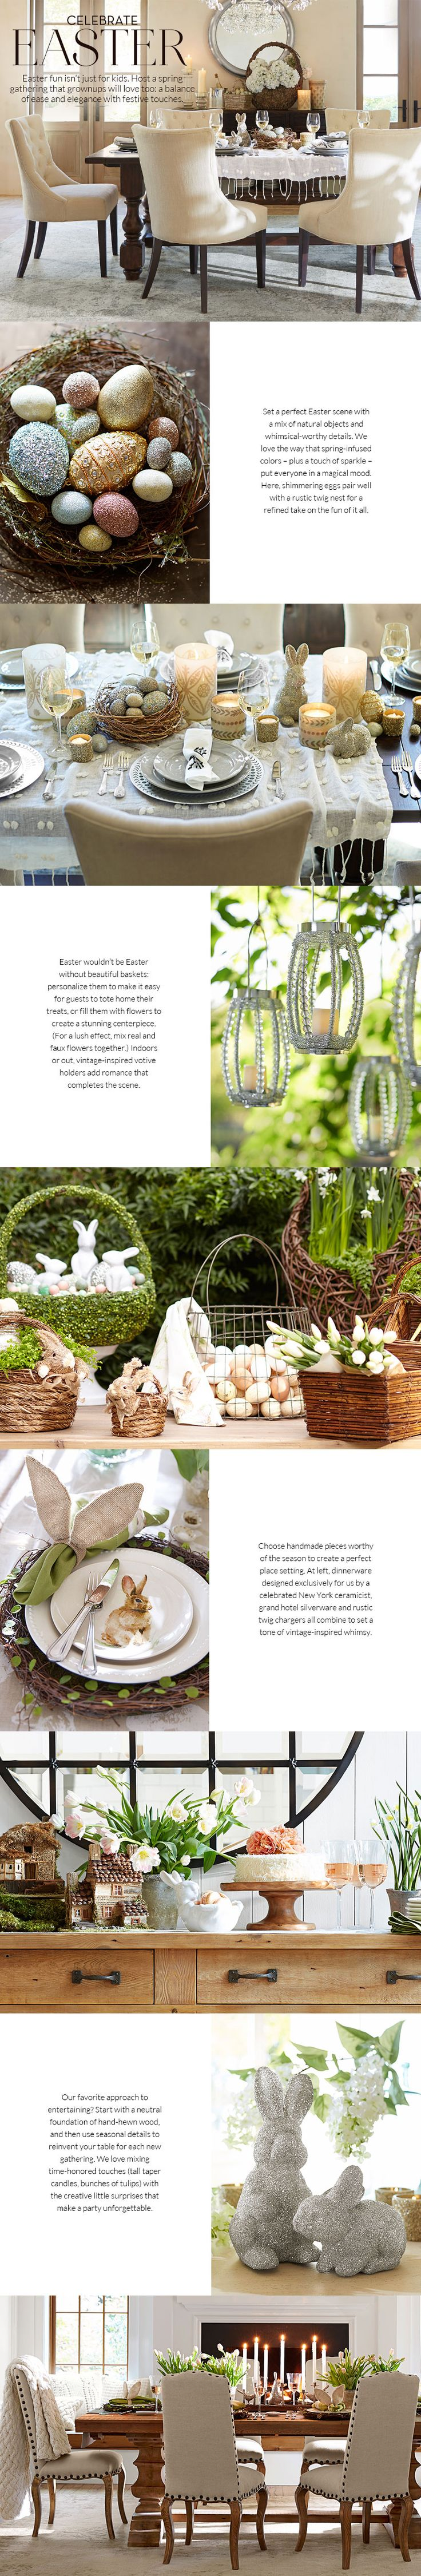 Easter fun isn't just for kids — this year, host a grown-up gathering that everyone will love!